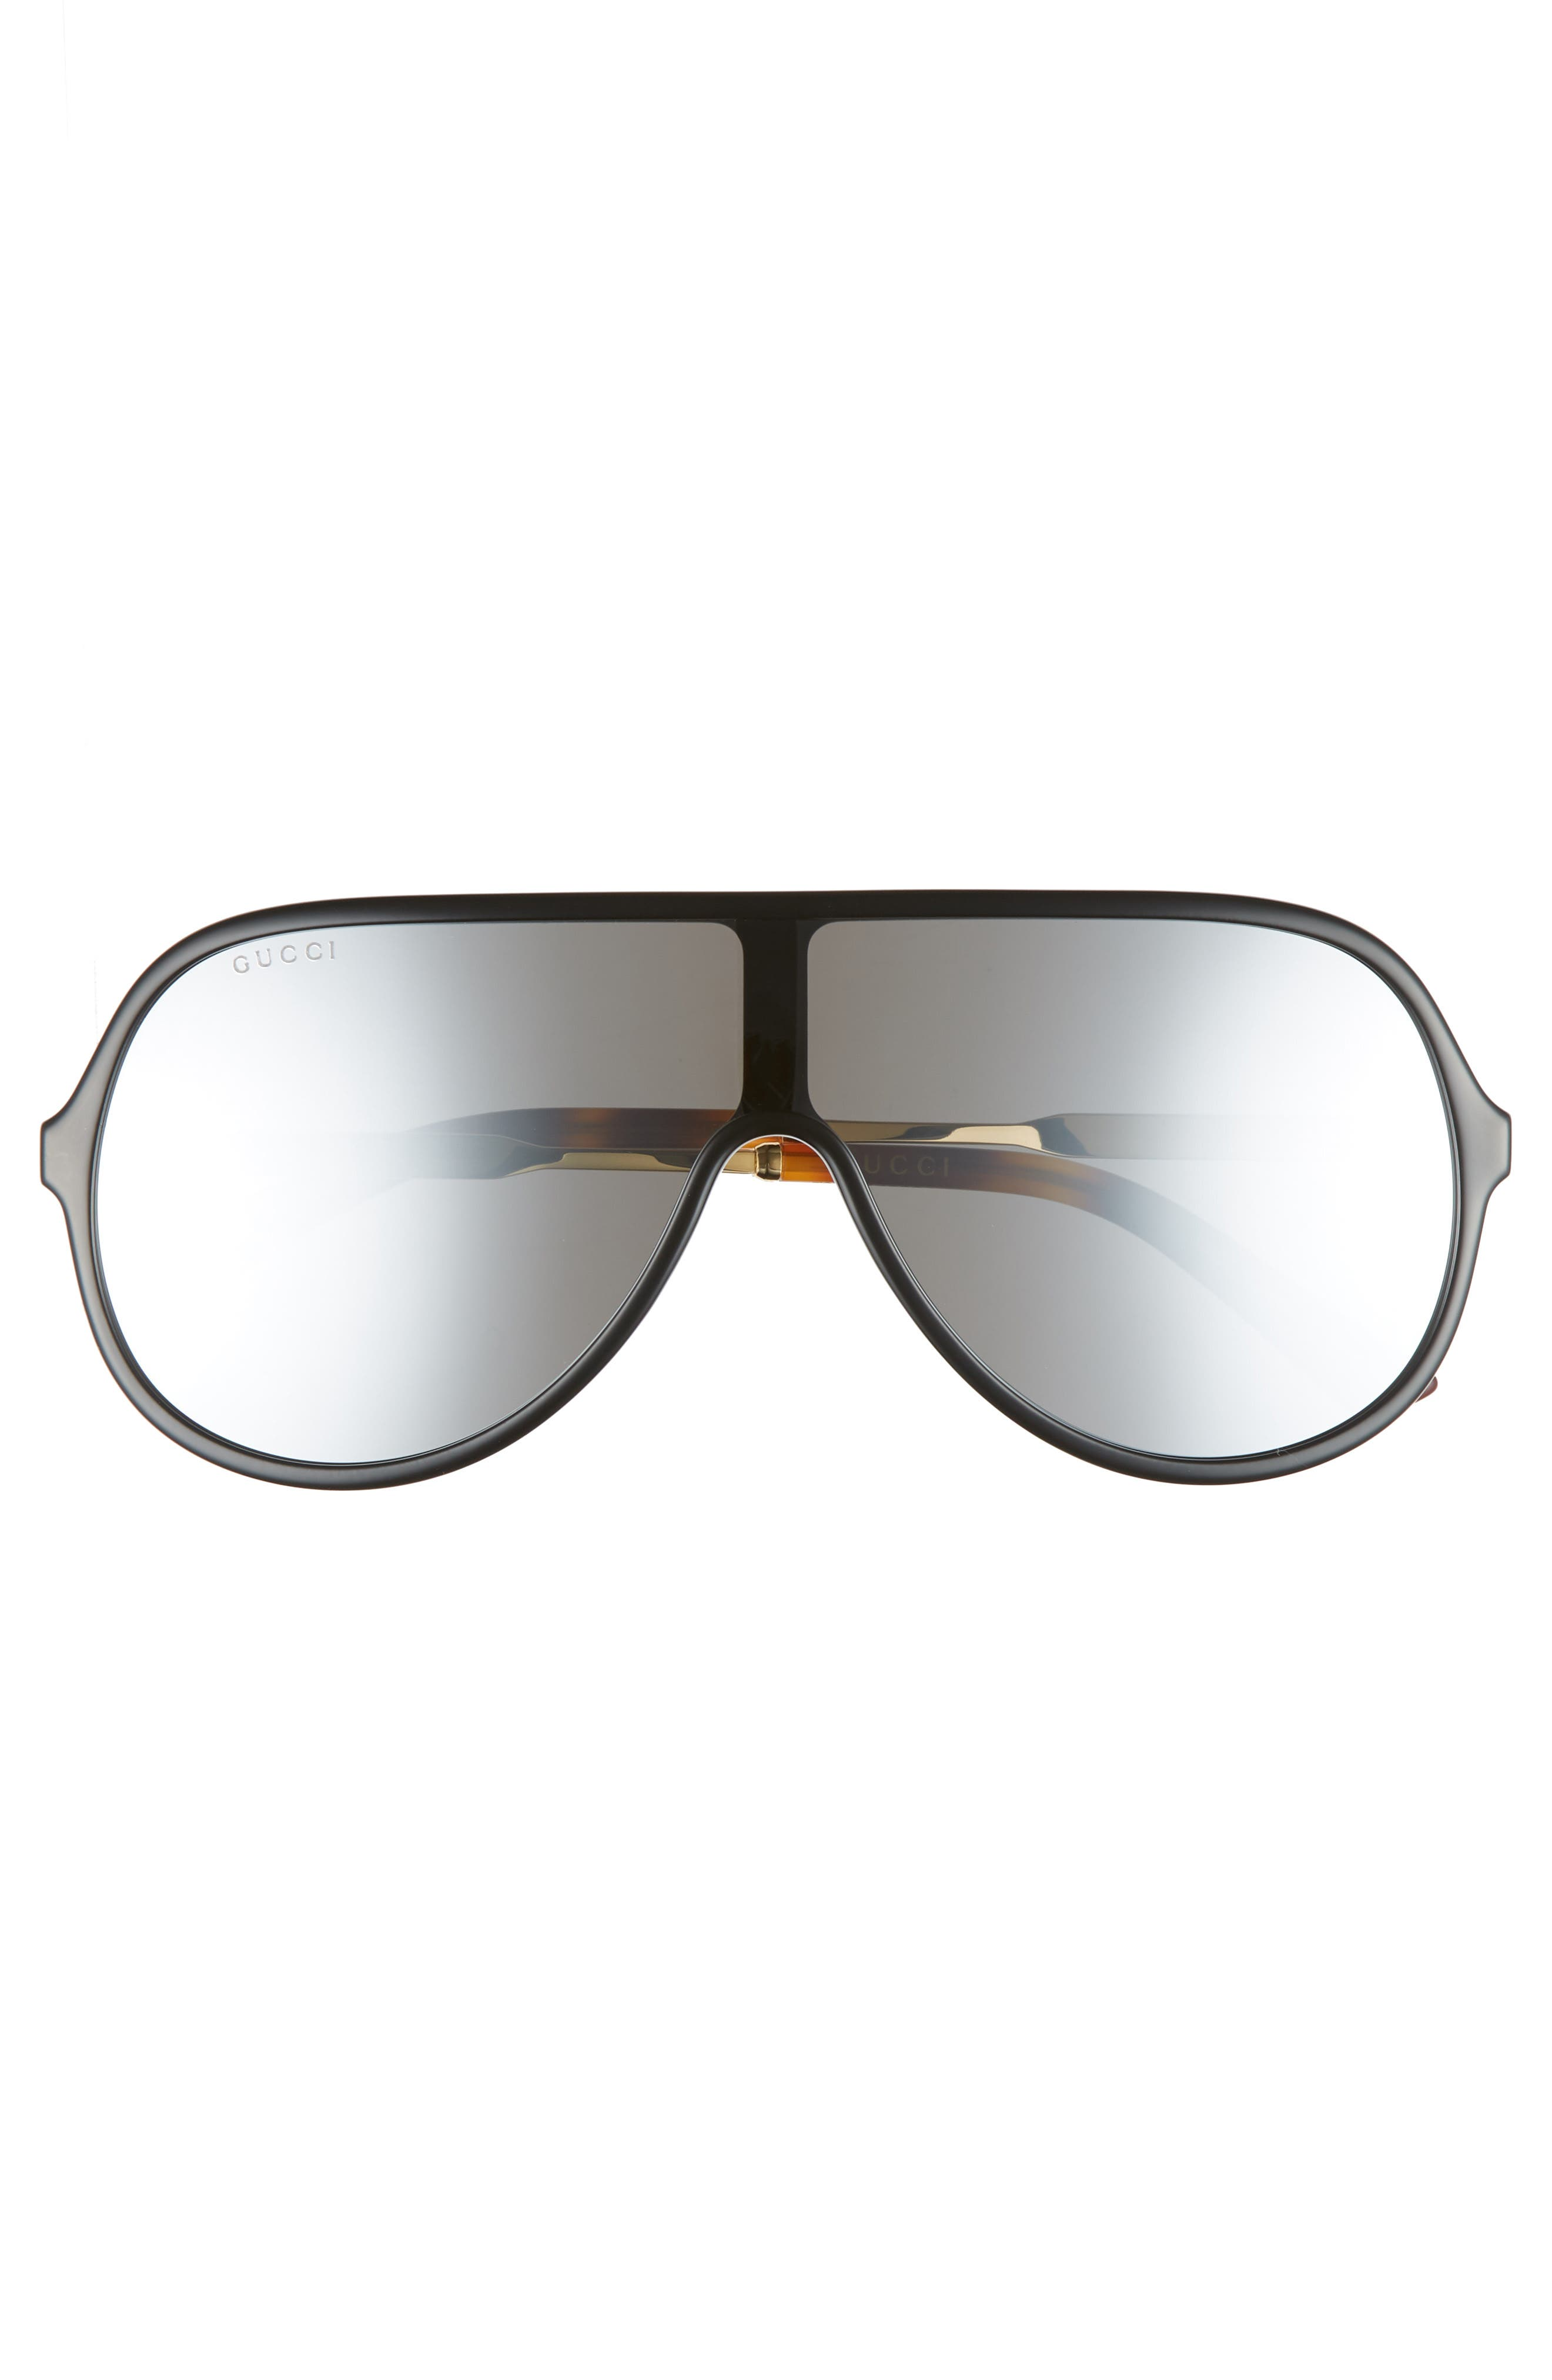 99mm Oversize Shield Sunglasses,                             Alternate thumbnail 2, color,                             BLACK